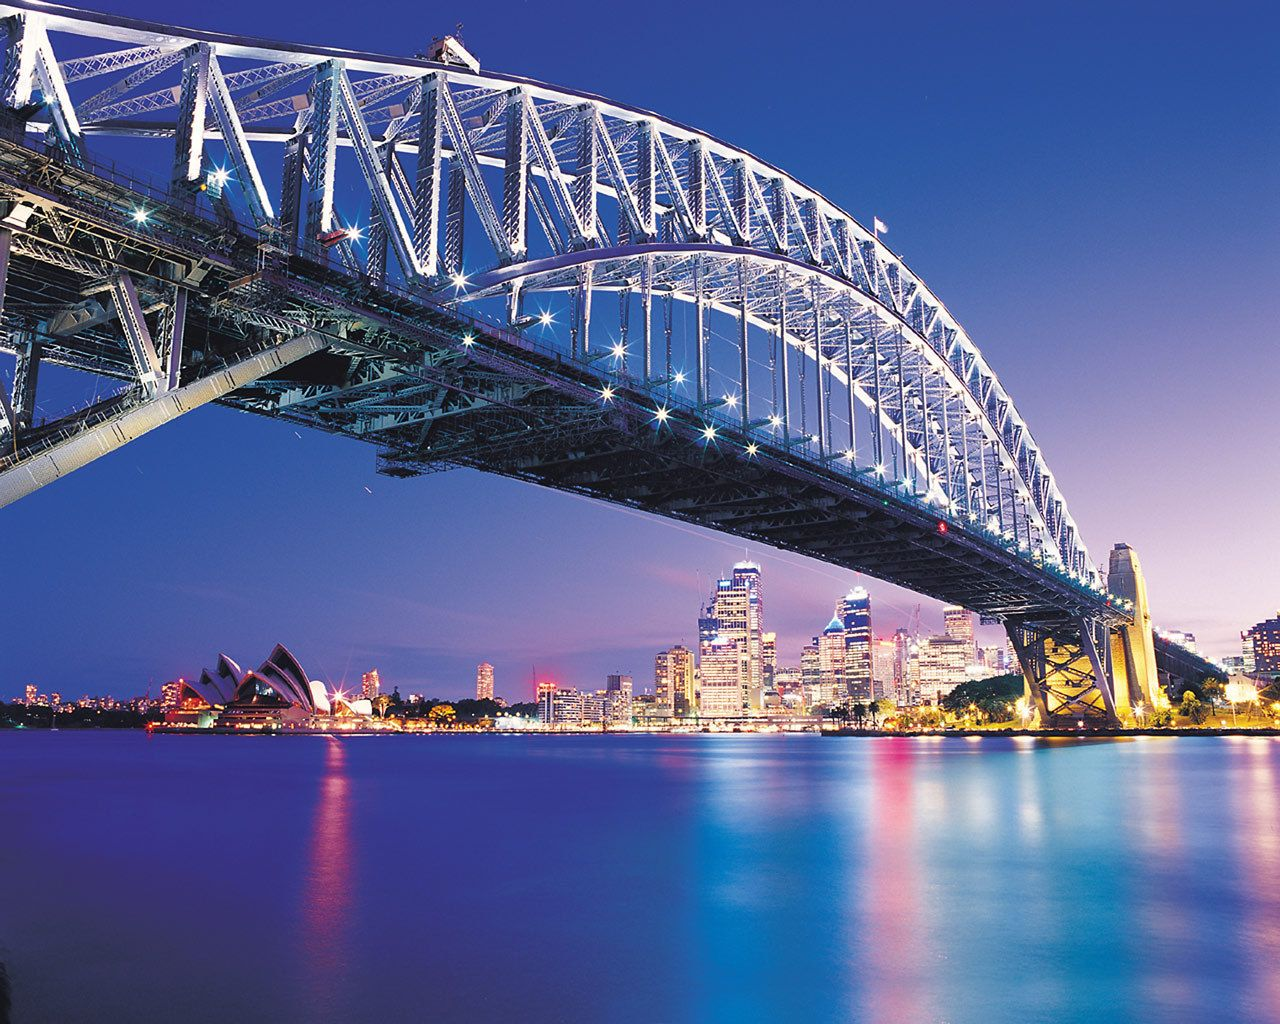 Monthly Sydney Dinners & Escorted Tours to France